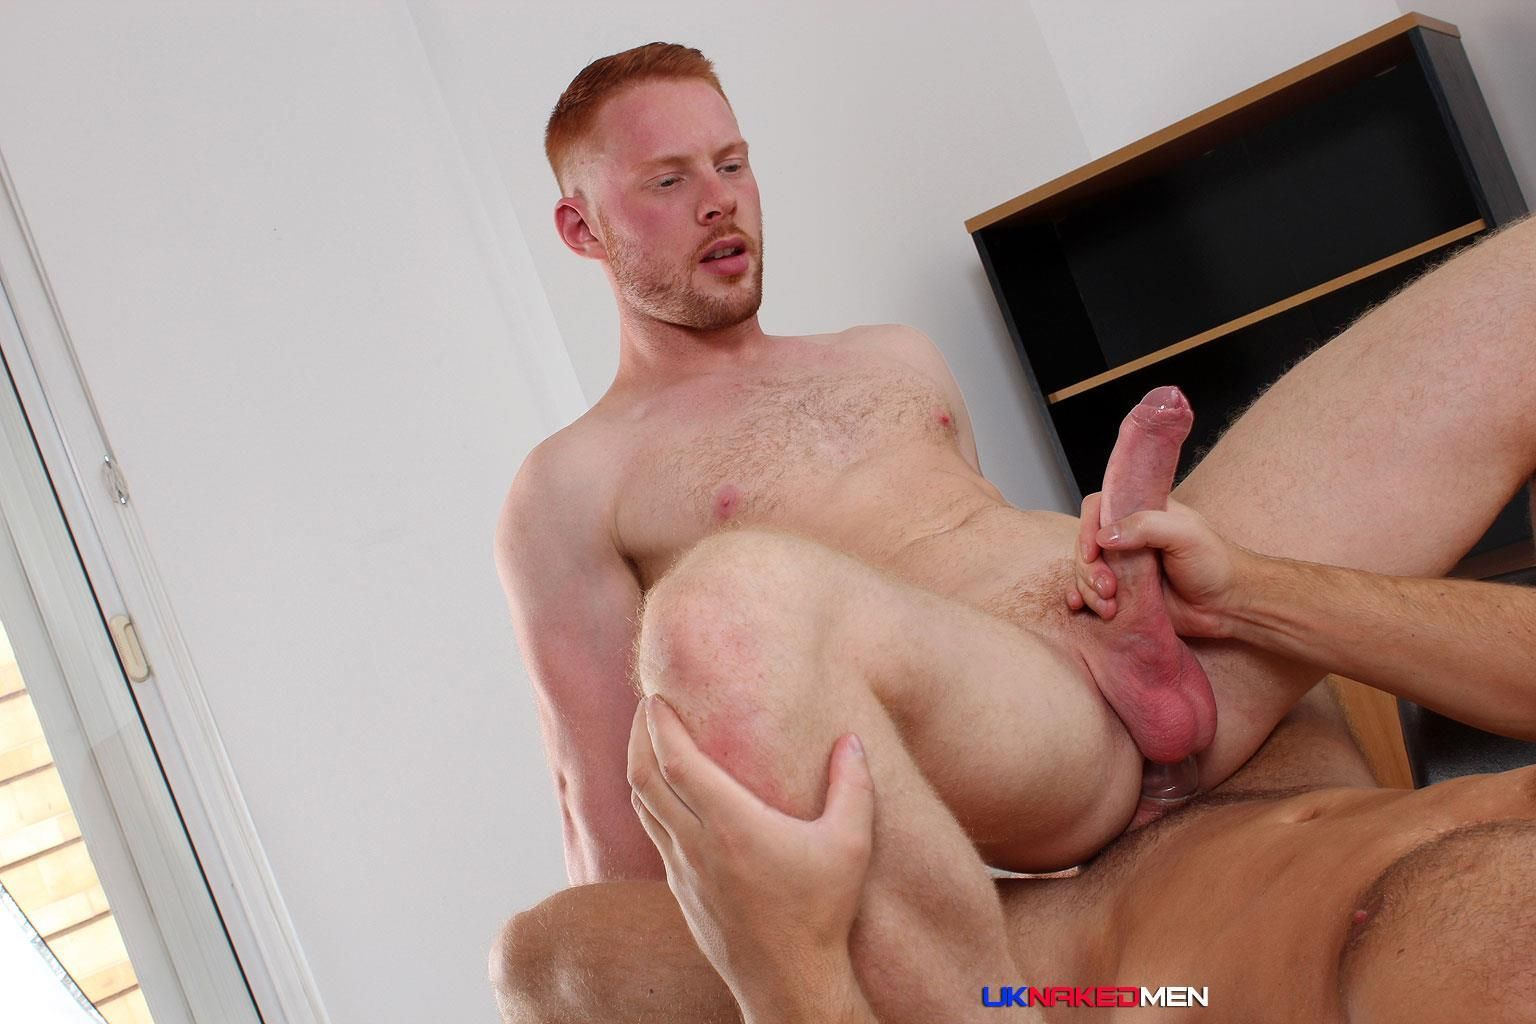 Big thick uncut cock sucking . Hot Naked Pics. Comments: 2